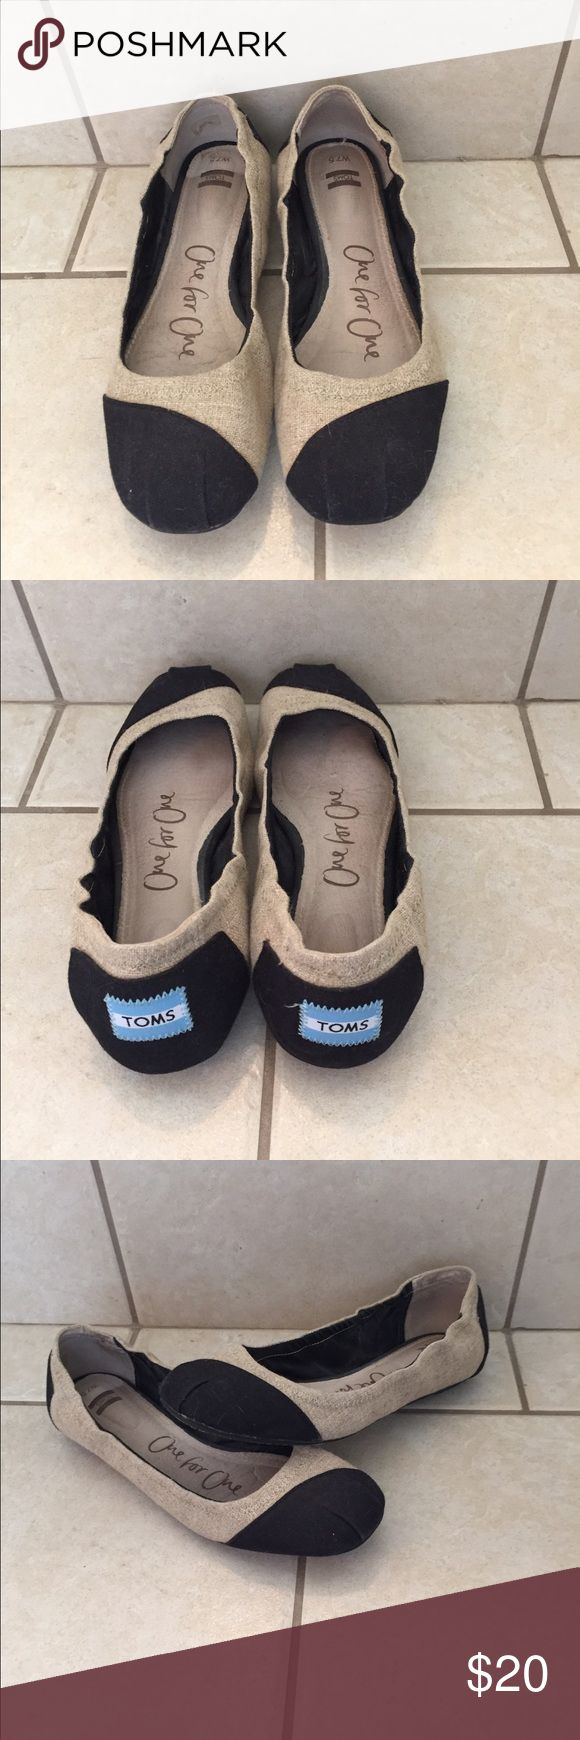 TOMS Ballet Flats Women's TOMS Ballet flats. Natural and black color. Size- 7.5M. Good condition. TOMS Shoes Flats & Loafers